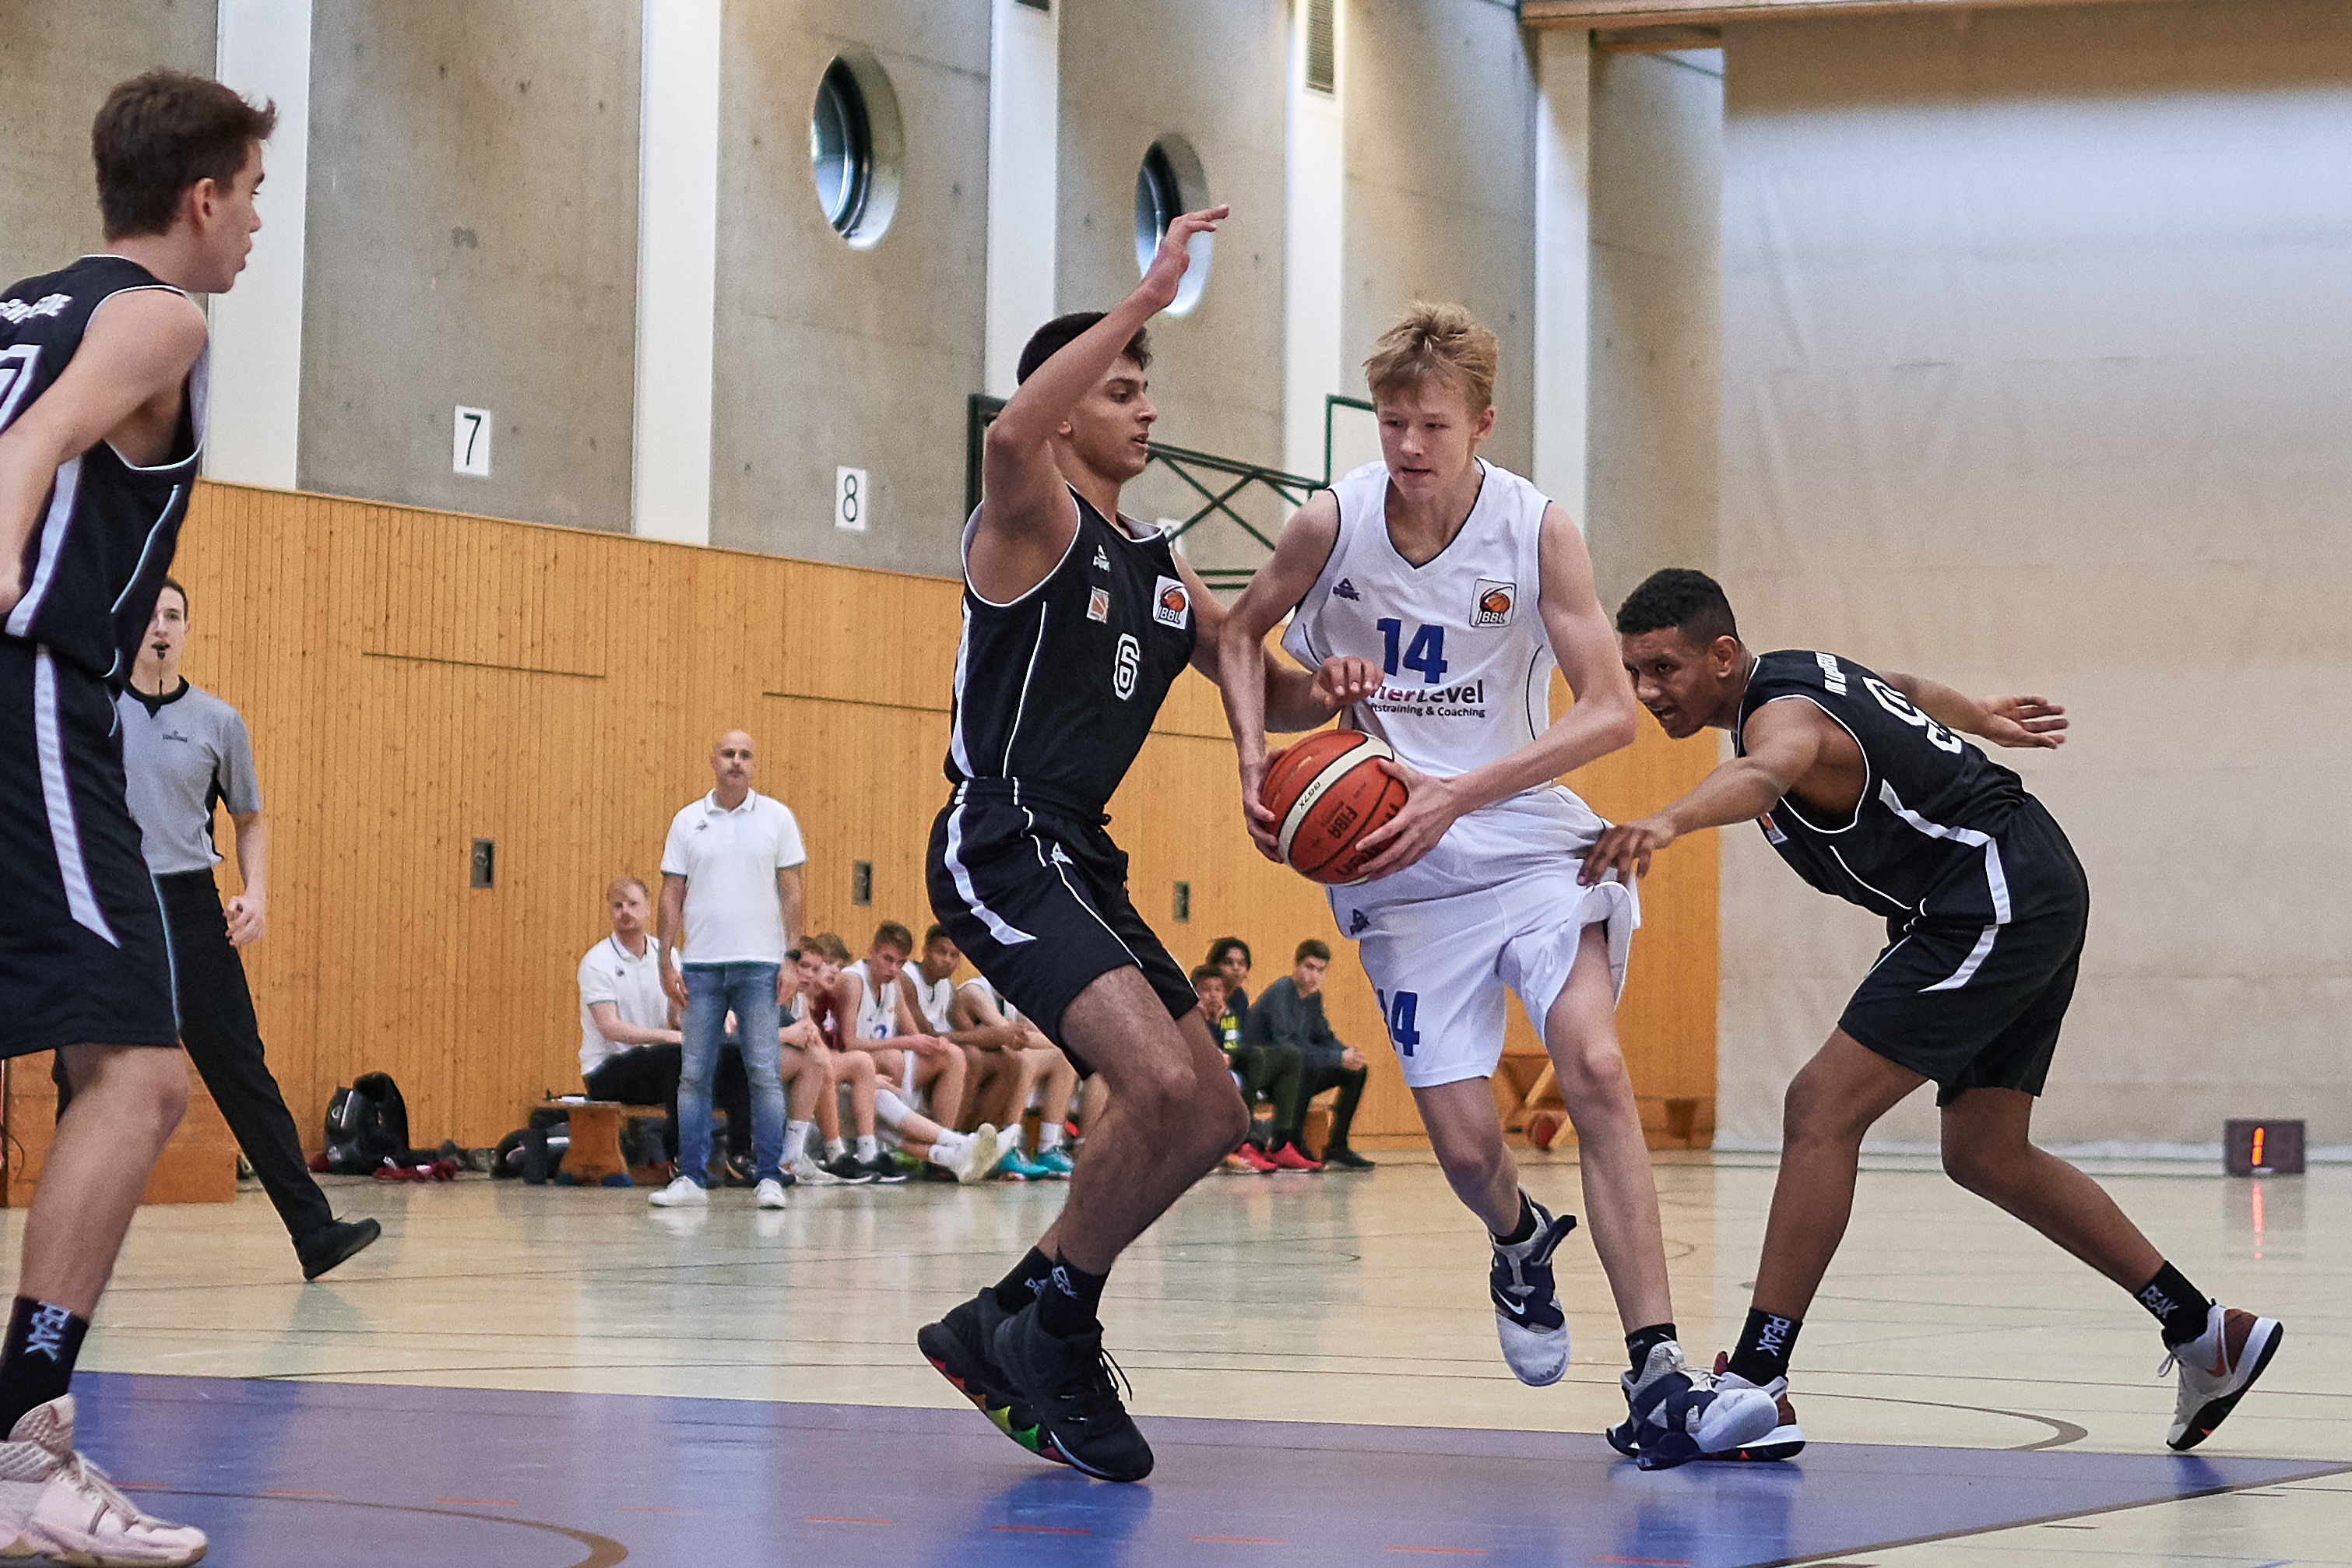 Higherlevel-TUSLI-JBBL-20191019-9294